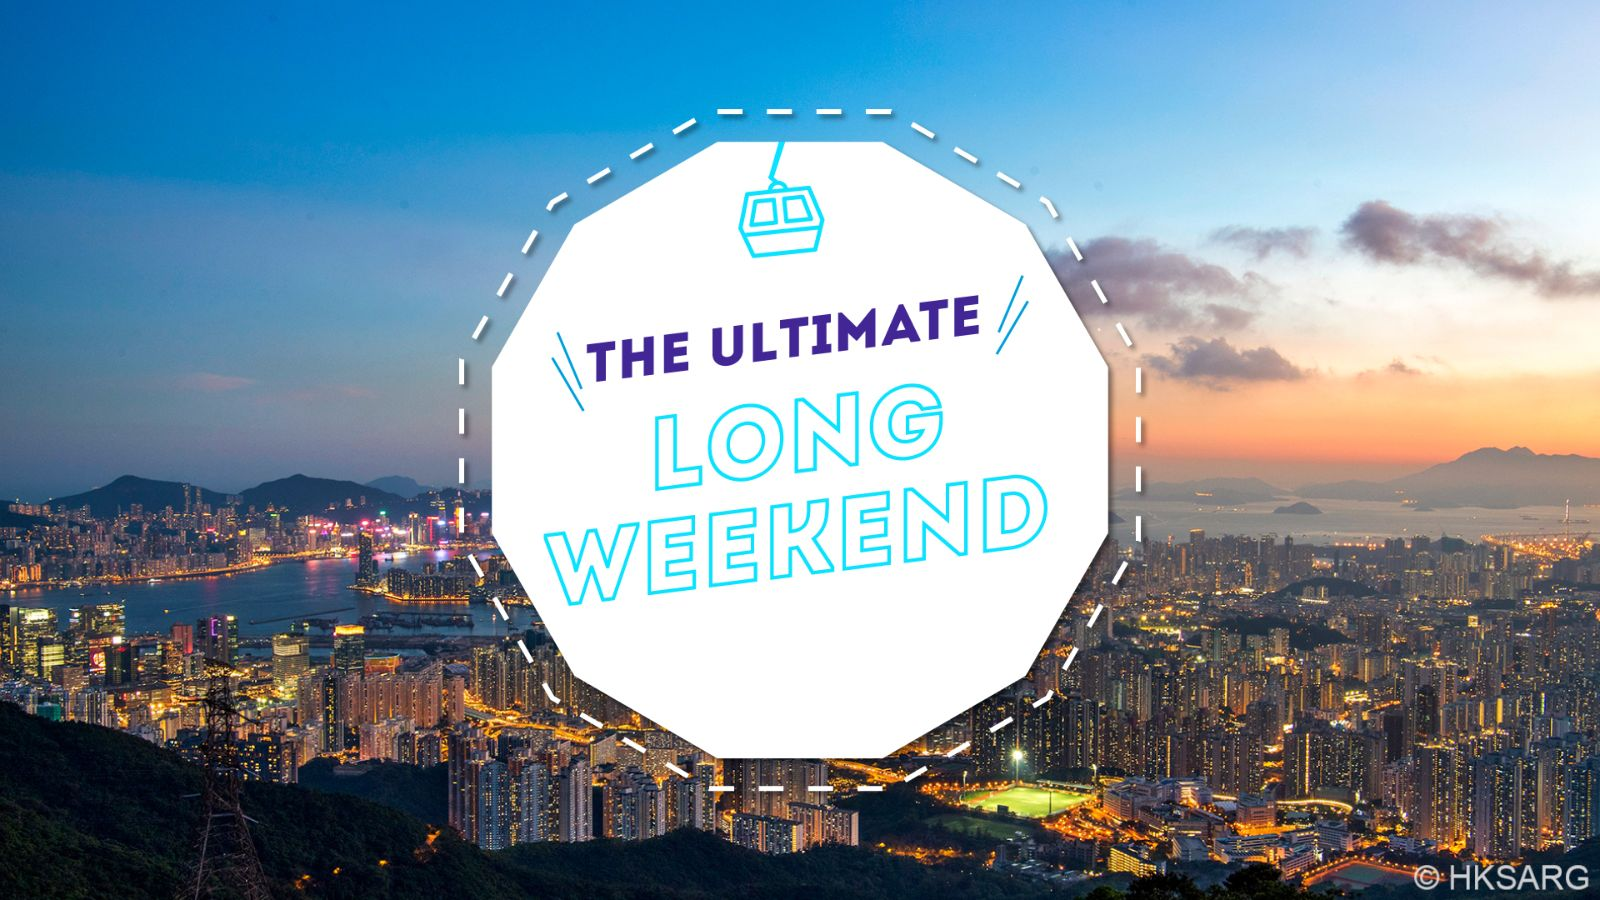 The ultimate long weekend in Hong Kong